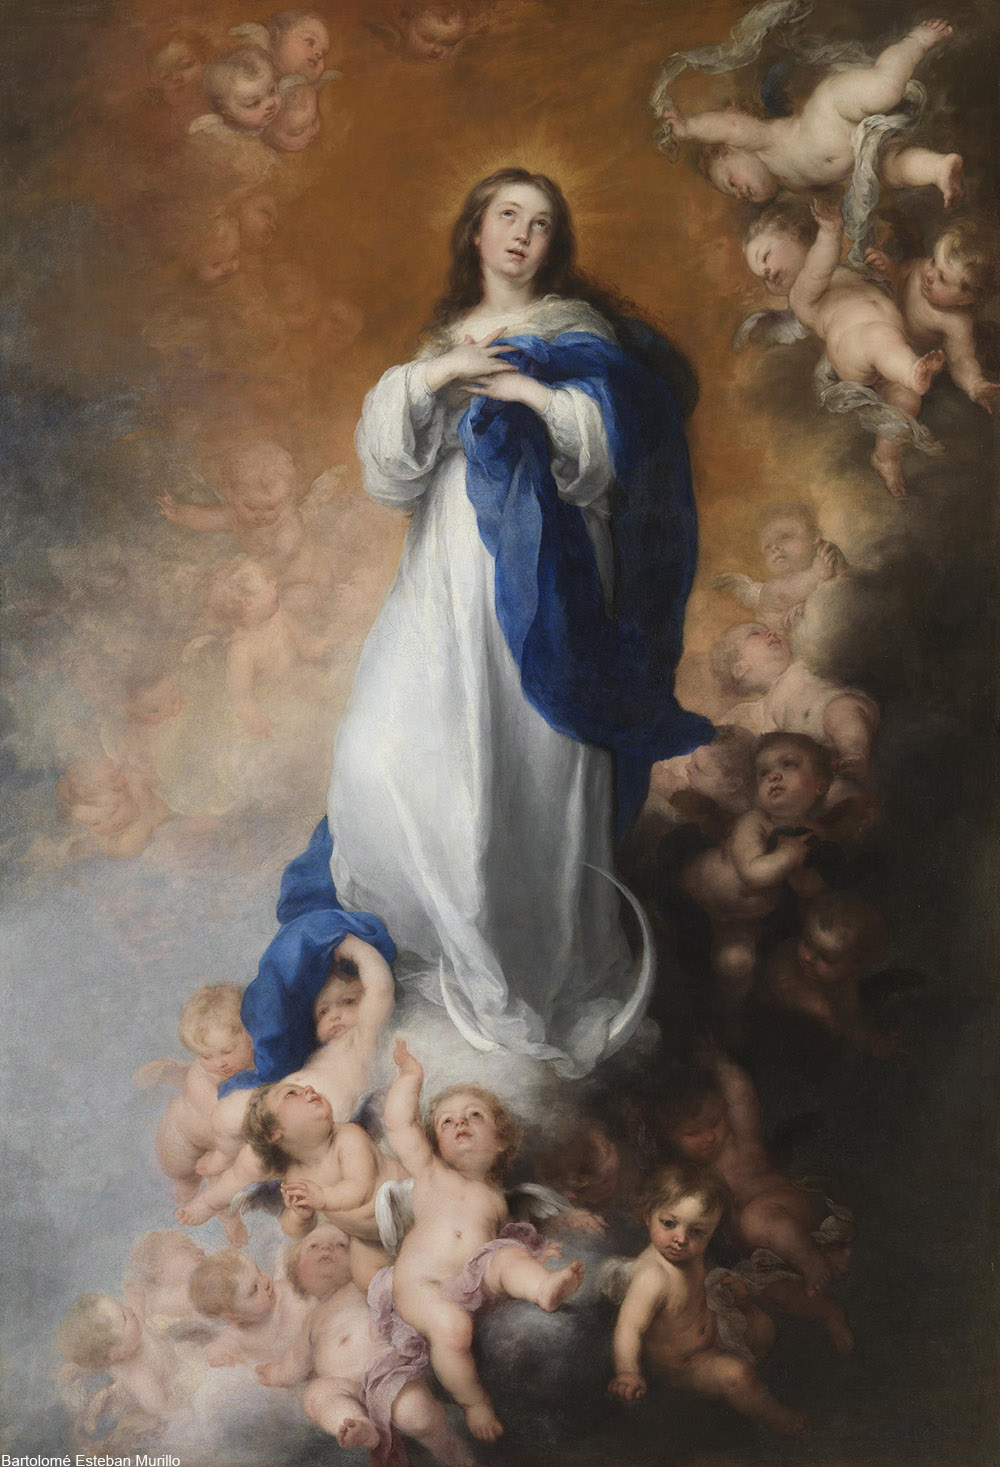 Bartolomé Esteban Murillo painting of the Immaculate Conception from 1678